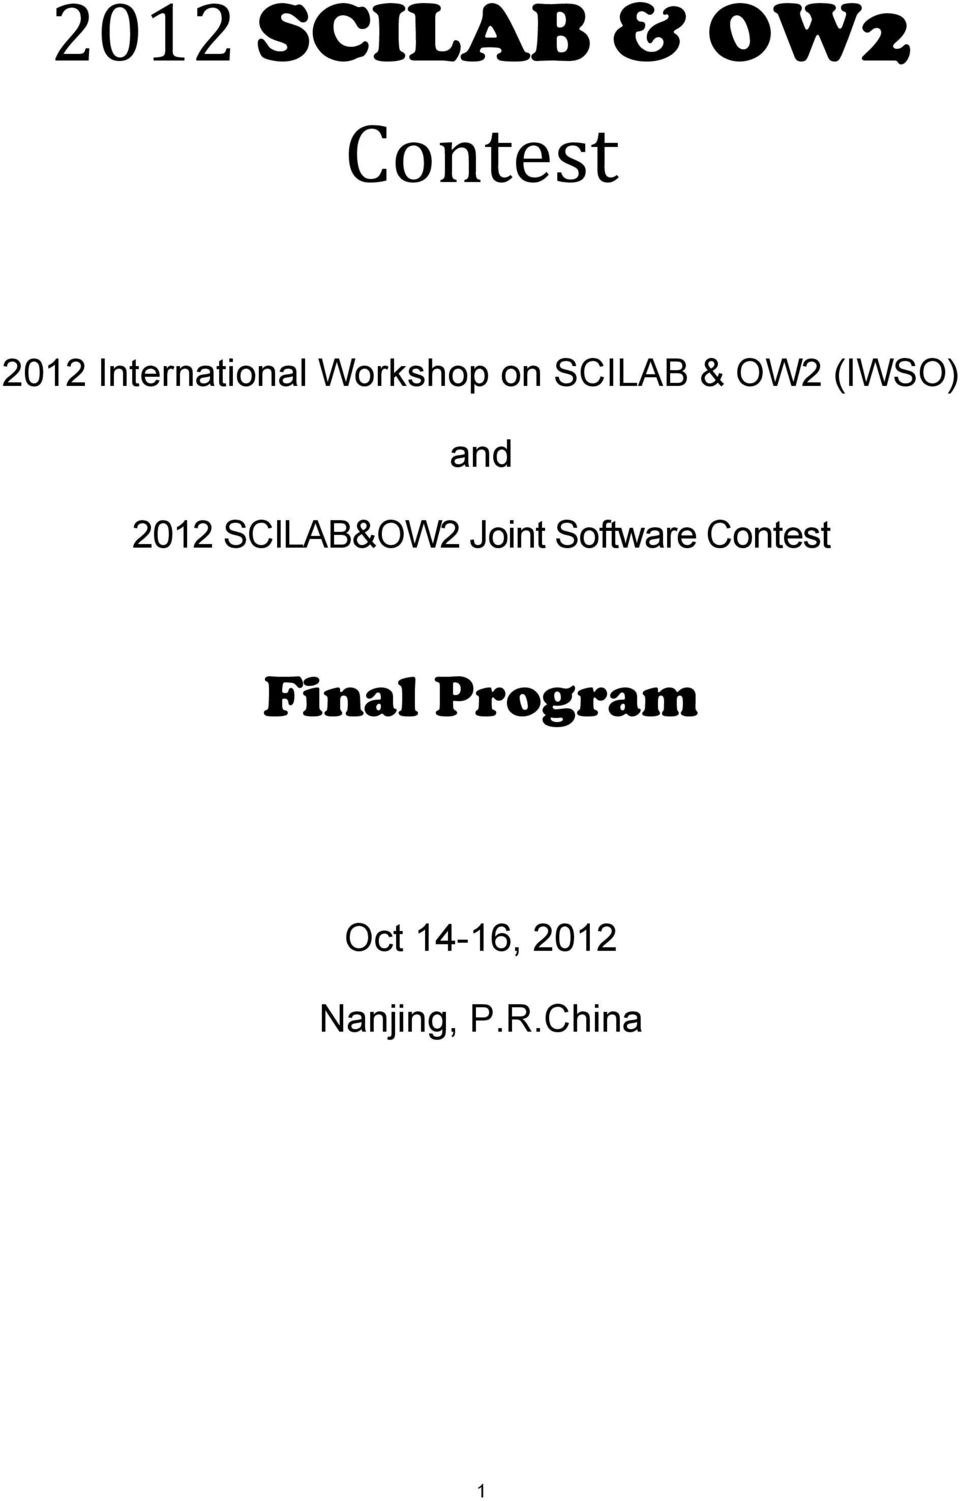 (IWSO) and 2012 SCILAB&OW2 Joint Software